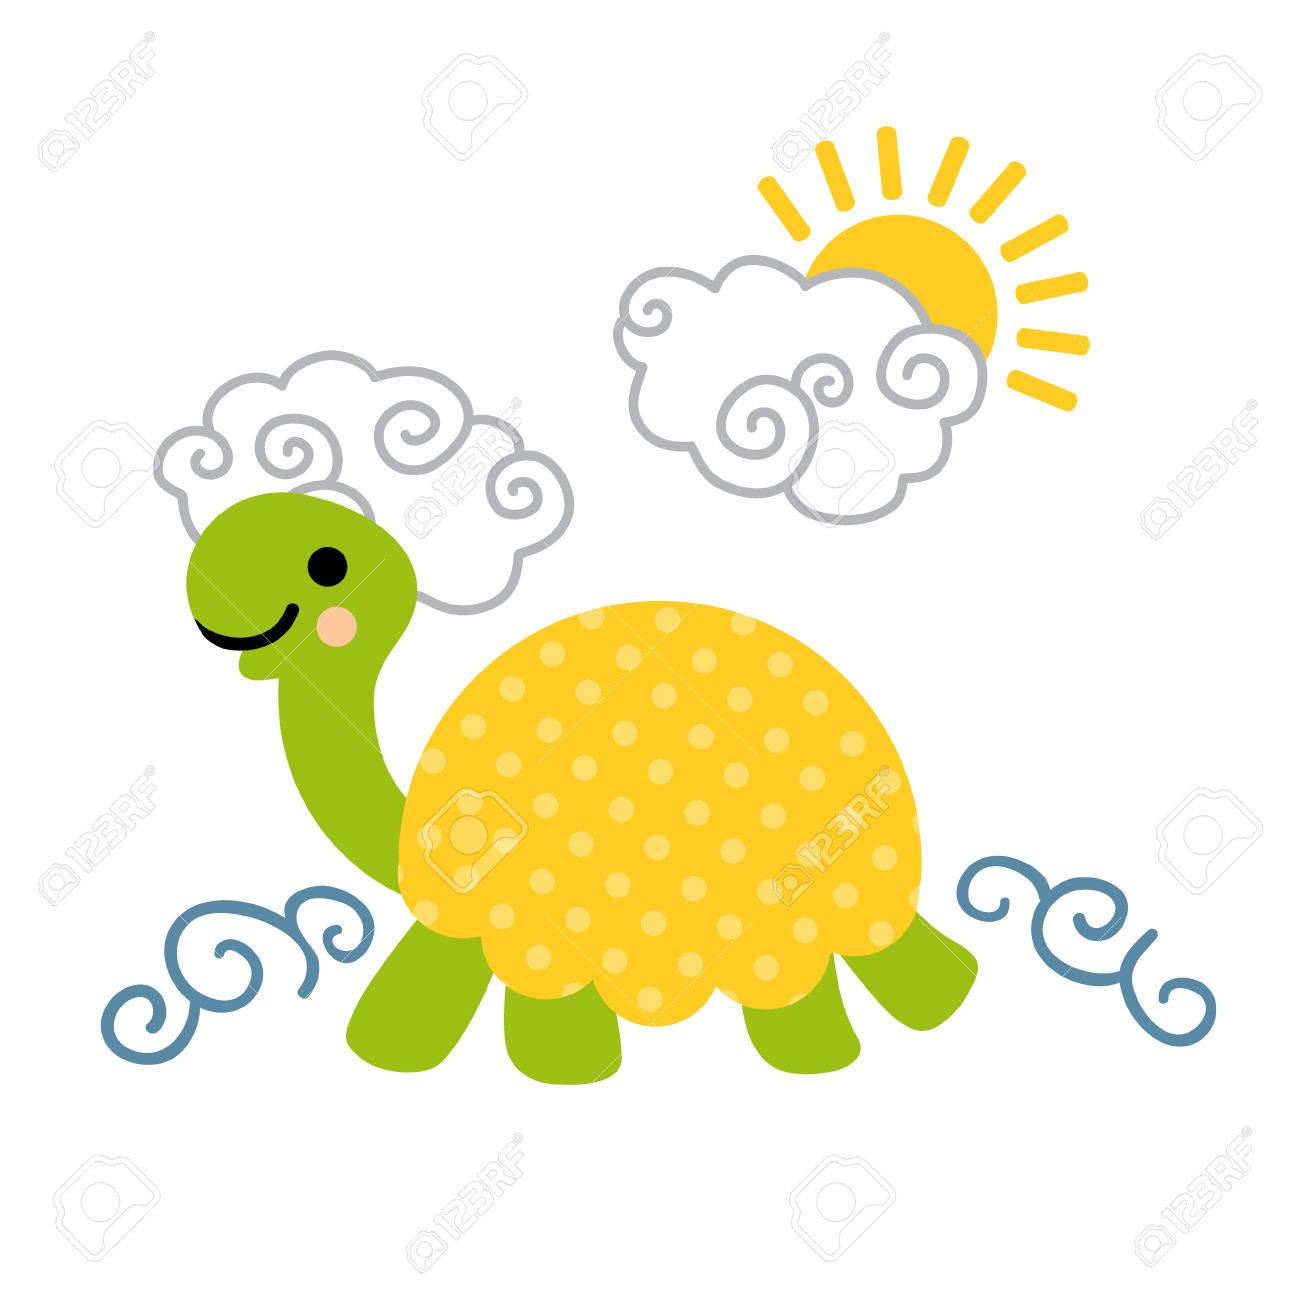 Cute Cartoon Smiling Turtle With Dotted Shell Swimming In The